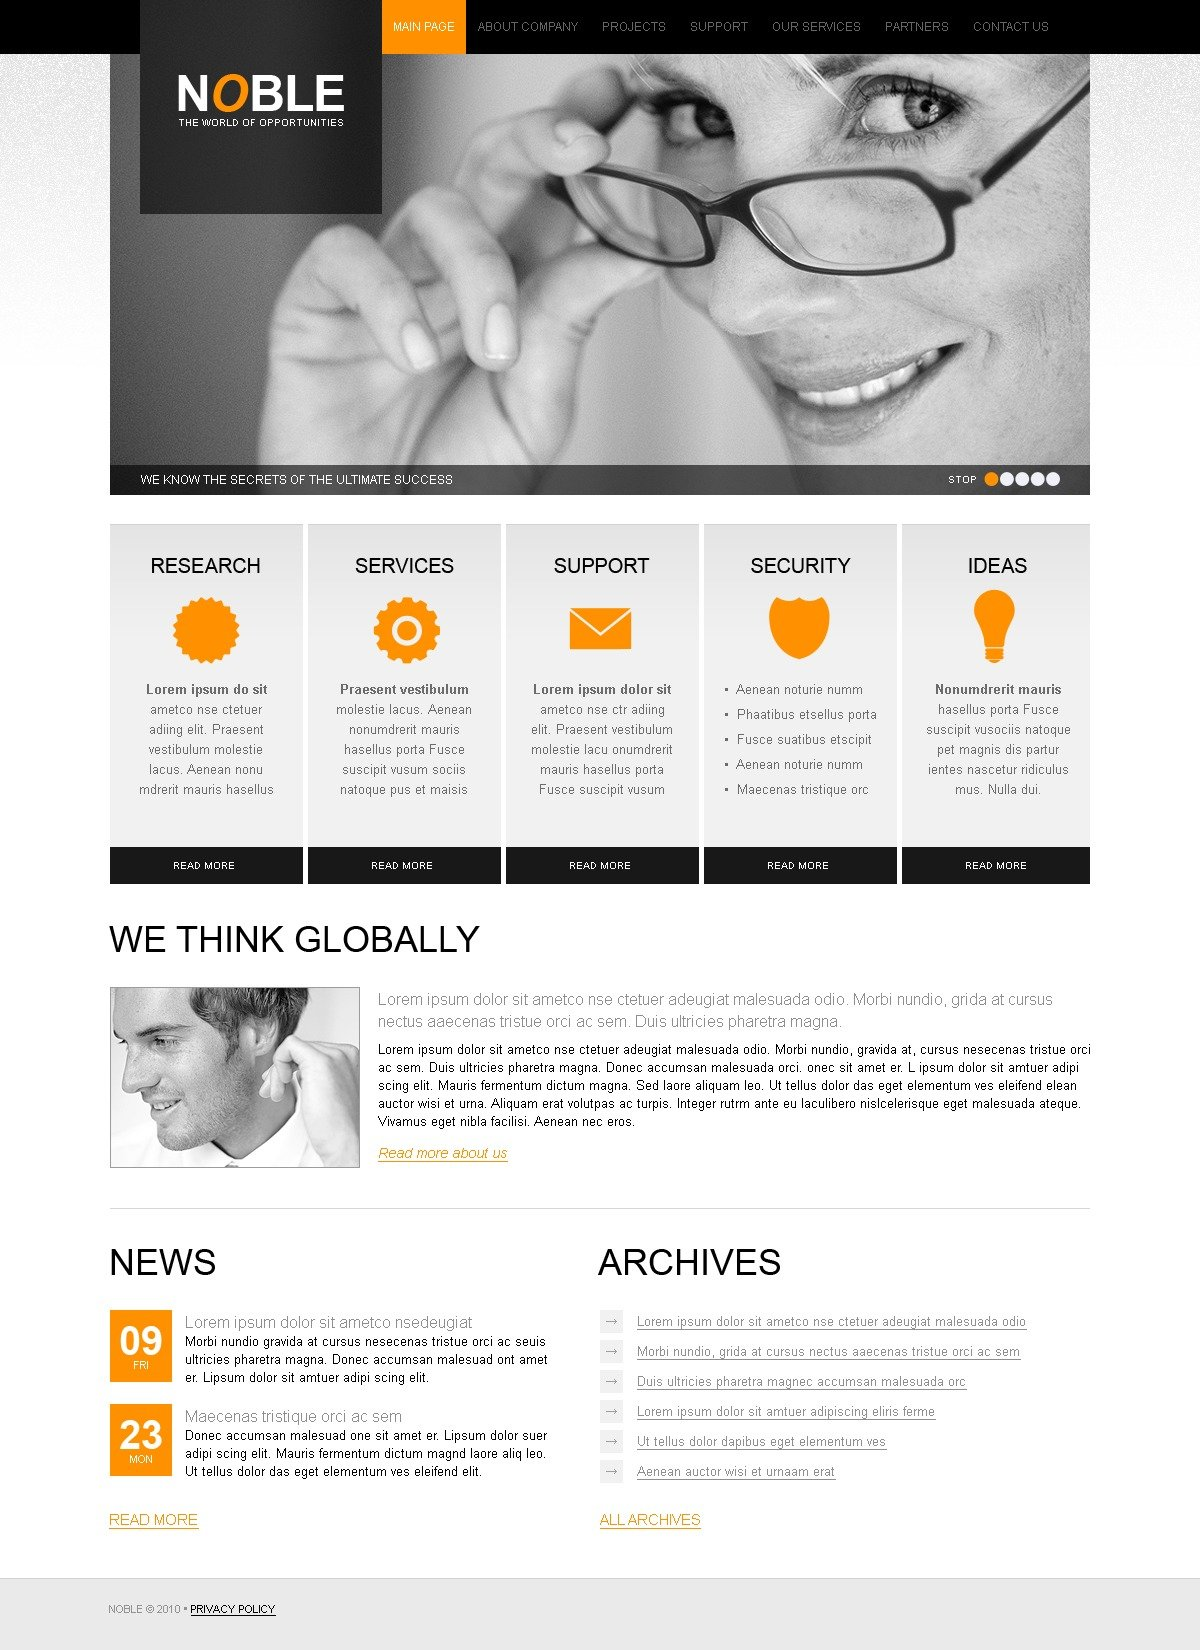 The Noble Business Company PSD Design 54277, one of the best PSD templates of its kind (business, flash 8, wide), also known as noble business company PSD template, corporate solutions PSD template, innovations PSD template, contacts PSD template, service PSD template, support PSD template, information dealer PSD template, stocks PSD template, team PSD template, success PSD template, money PSD template, marketing PSD template, director PSD template, manager PSD template, analytics PSD template, planning PSD template, limited PSD template, office PSD template, sales and related with noble business company, corporate solutions, innovations, contacts, service, support, information dealer, stocks, team, success, money, marketing, director, manager, analytics, planning, limited, office, sales, etc.